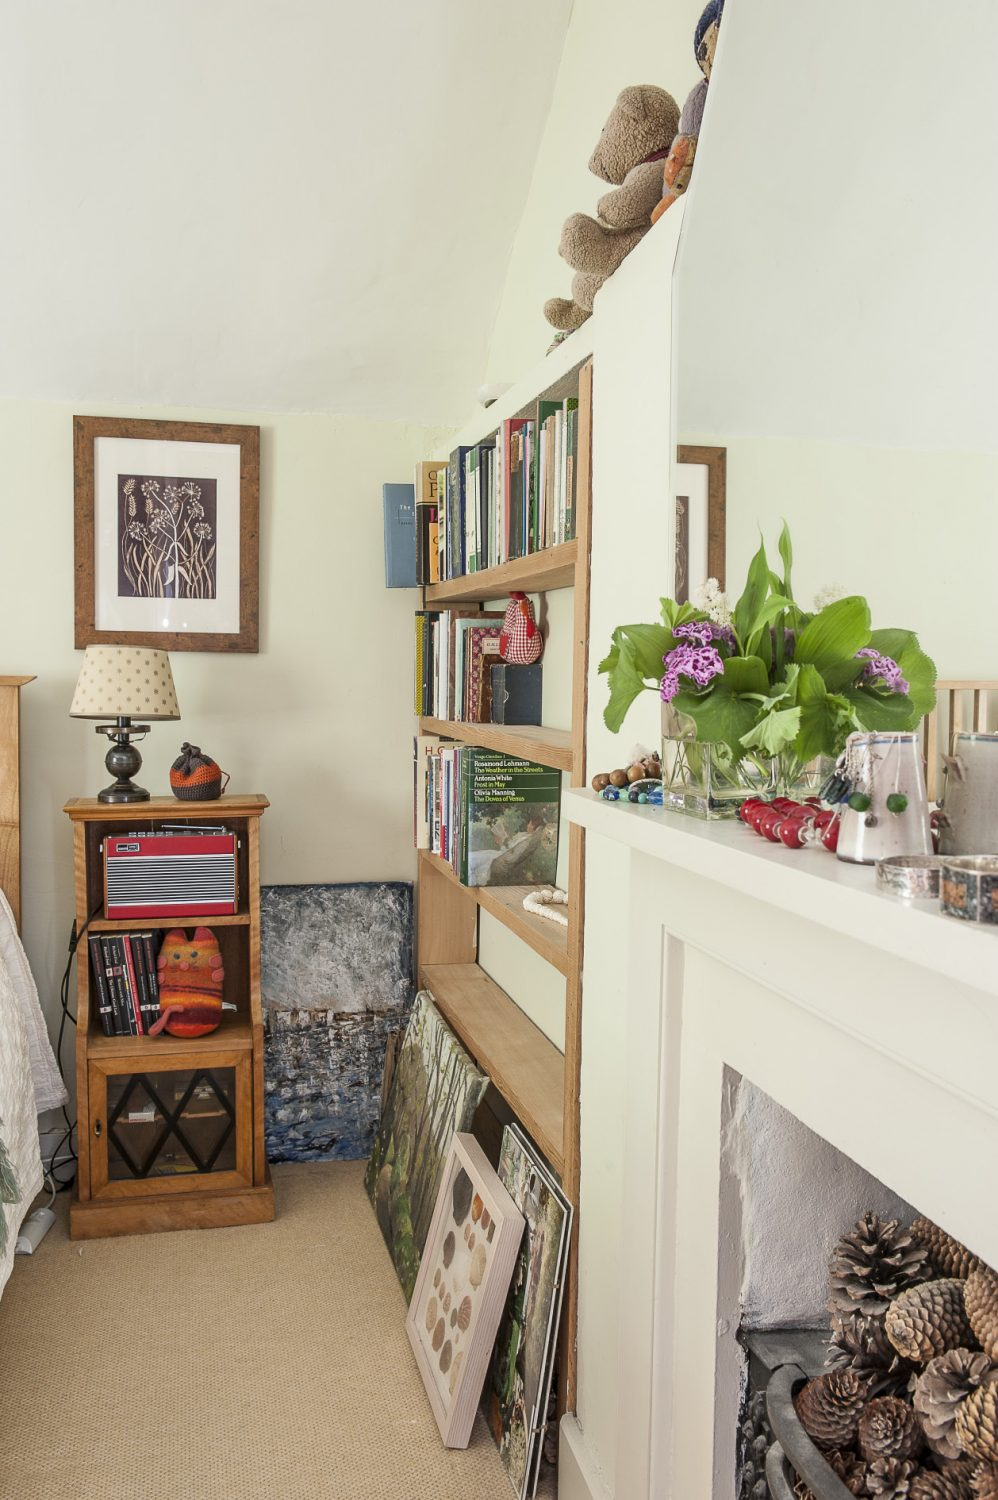 As in most rooms of the house, Wendy has gathered flowers and foliage from the garden which are positioned on the mantelpiece alongside her jewellery